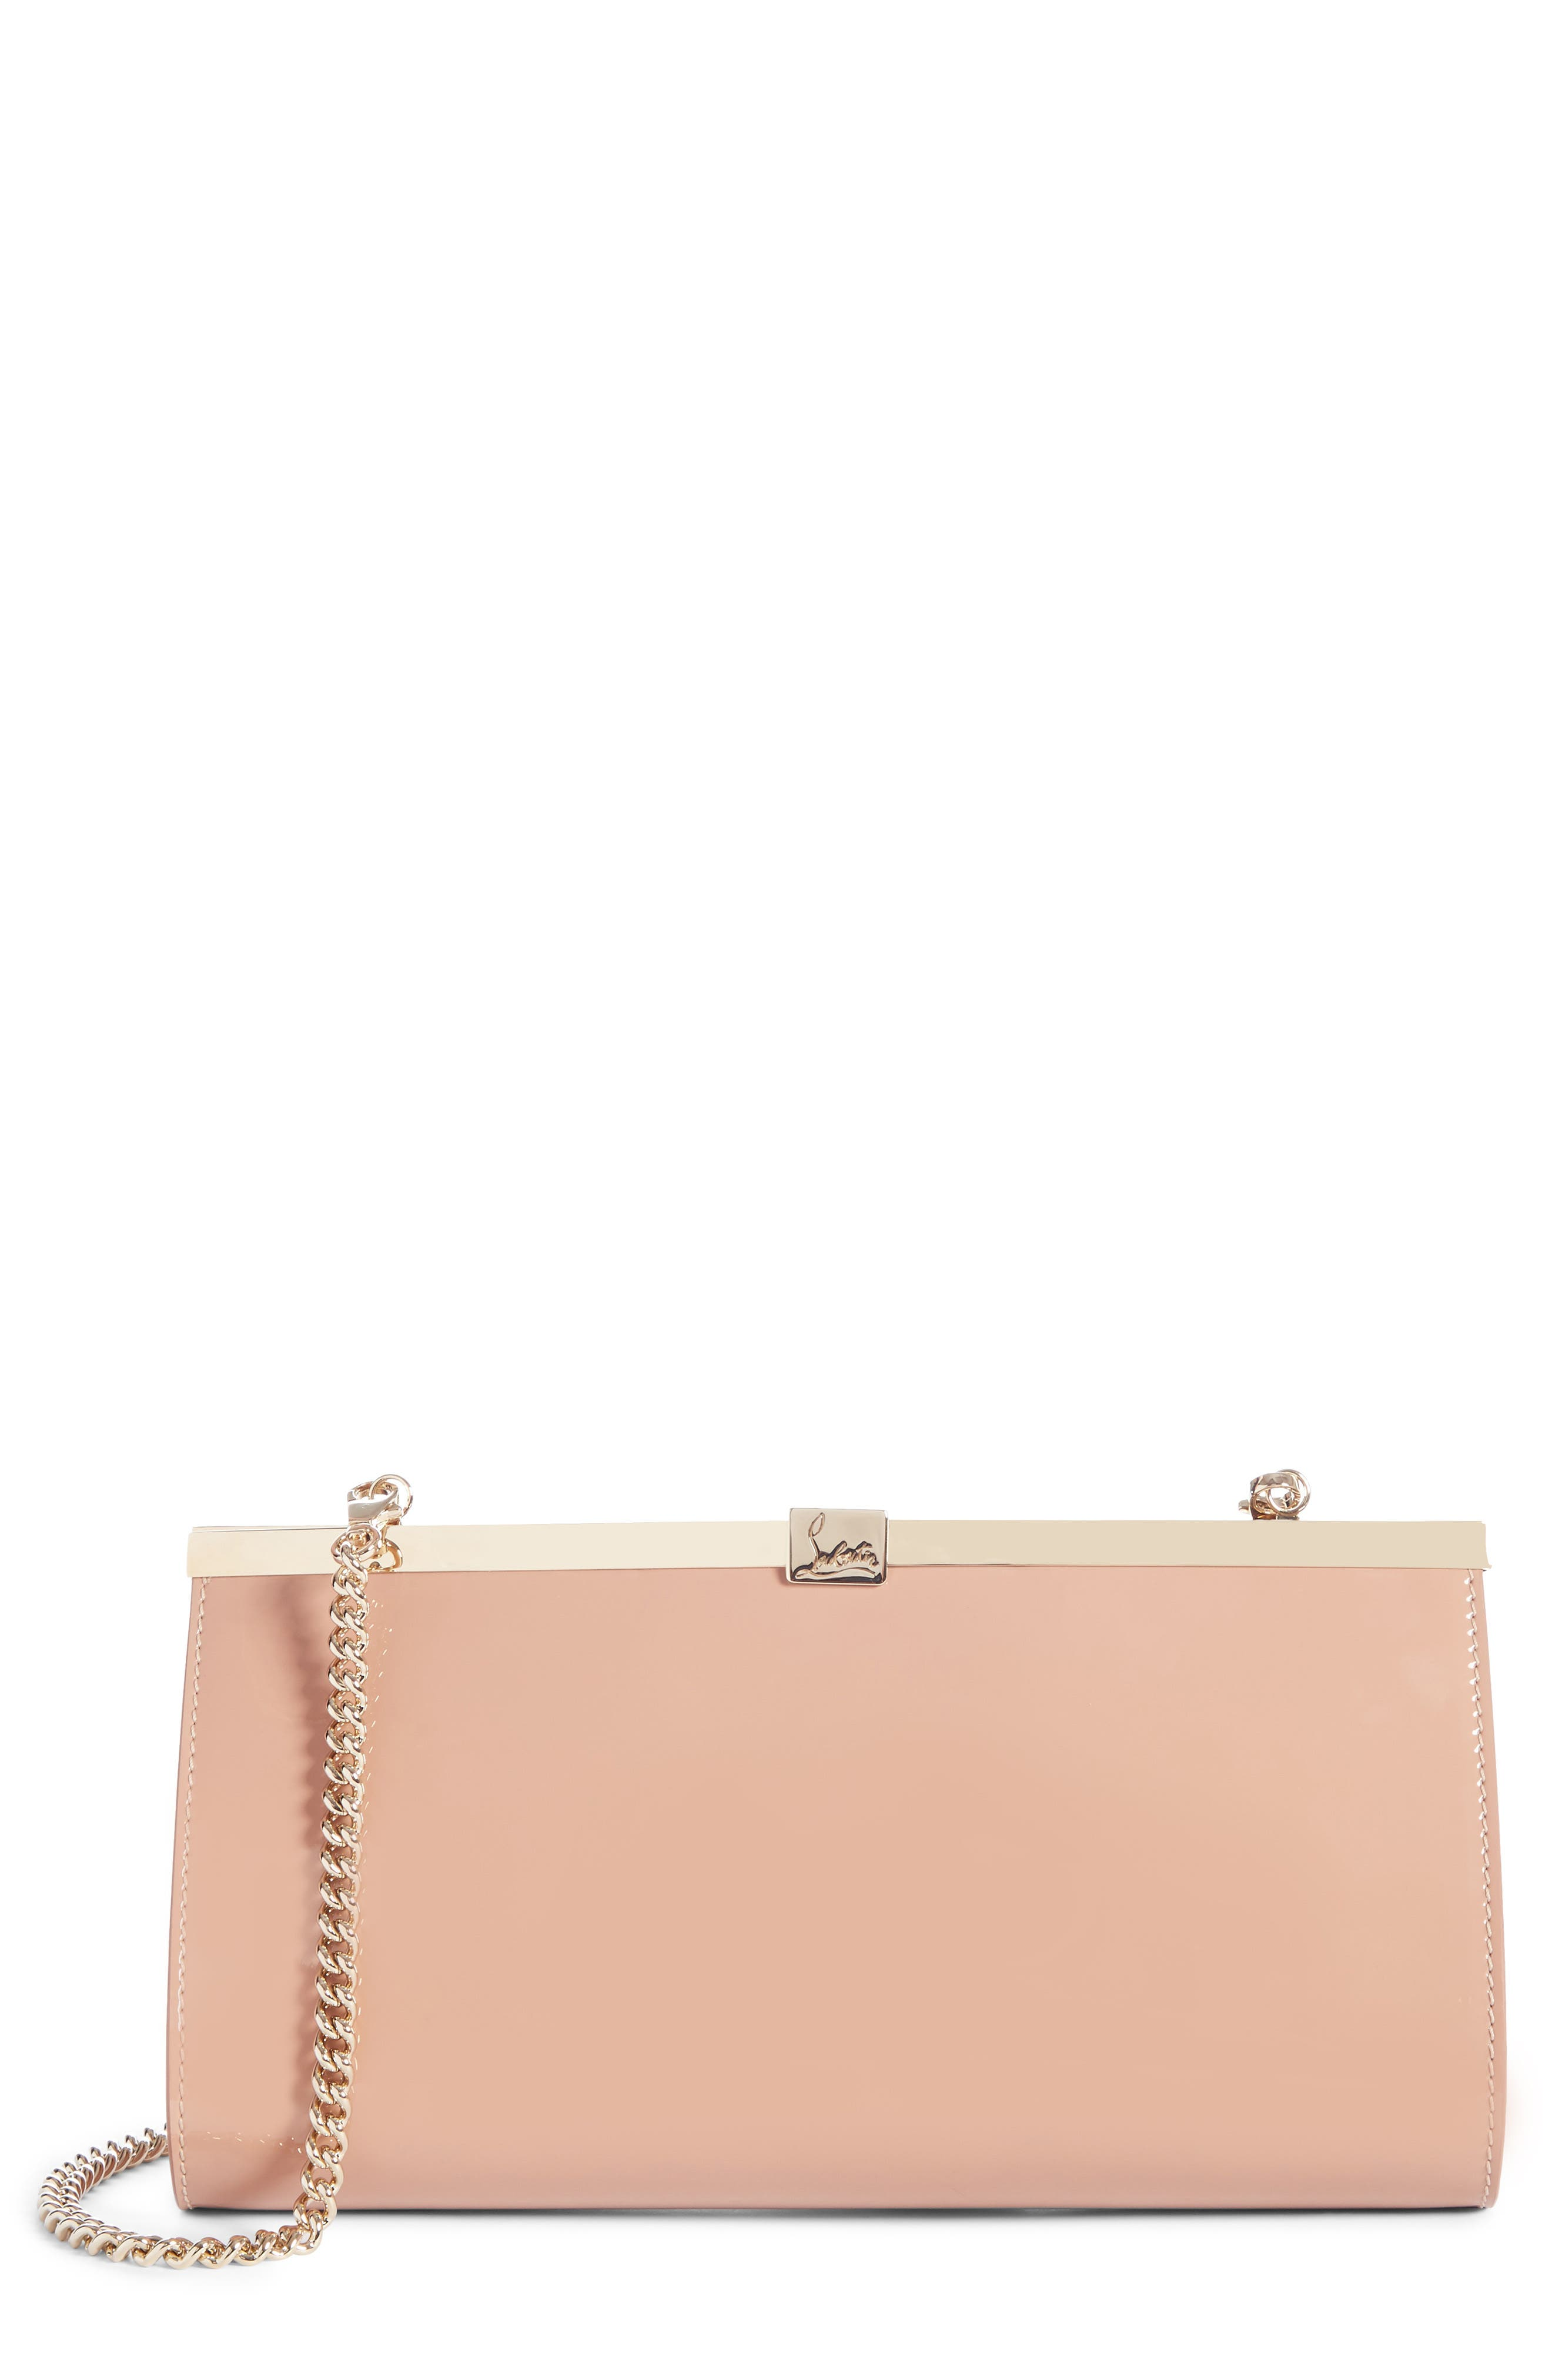 CHRISTIAN LOUBOUTIN, Palmette Patent Leather Frame Clutch, Main thumbnail 1, color, NUDE